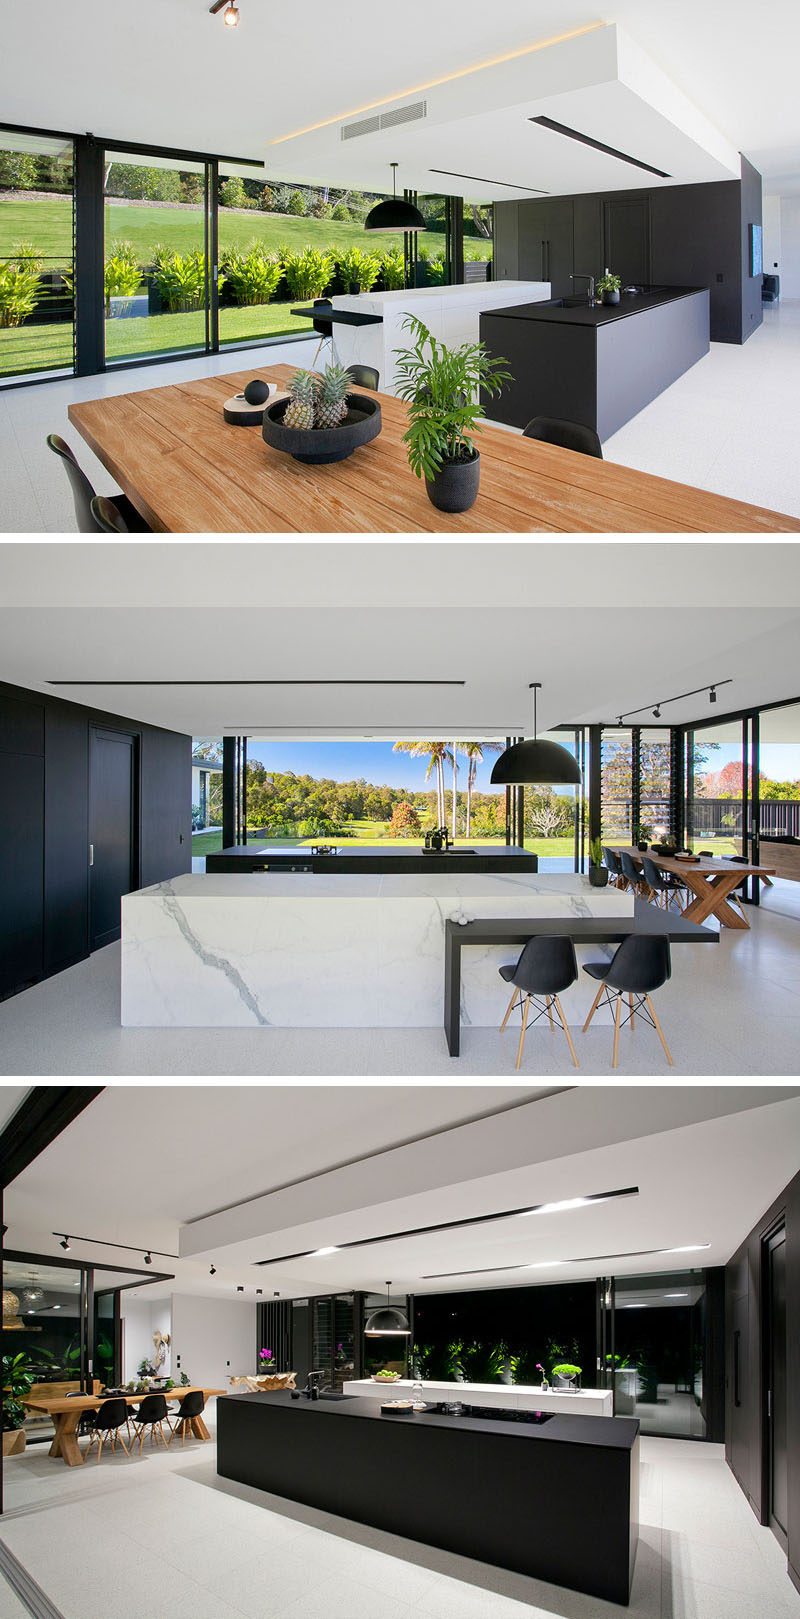 In this minimalist kitchen, fine matt black laminate and marble-look porcelain used in the design of the islands , and a large black box hides the essentials of the kitchen. Inside there's plenty of storage, an additional butlers sink and extra prep space.